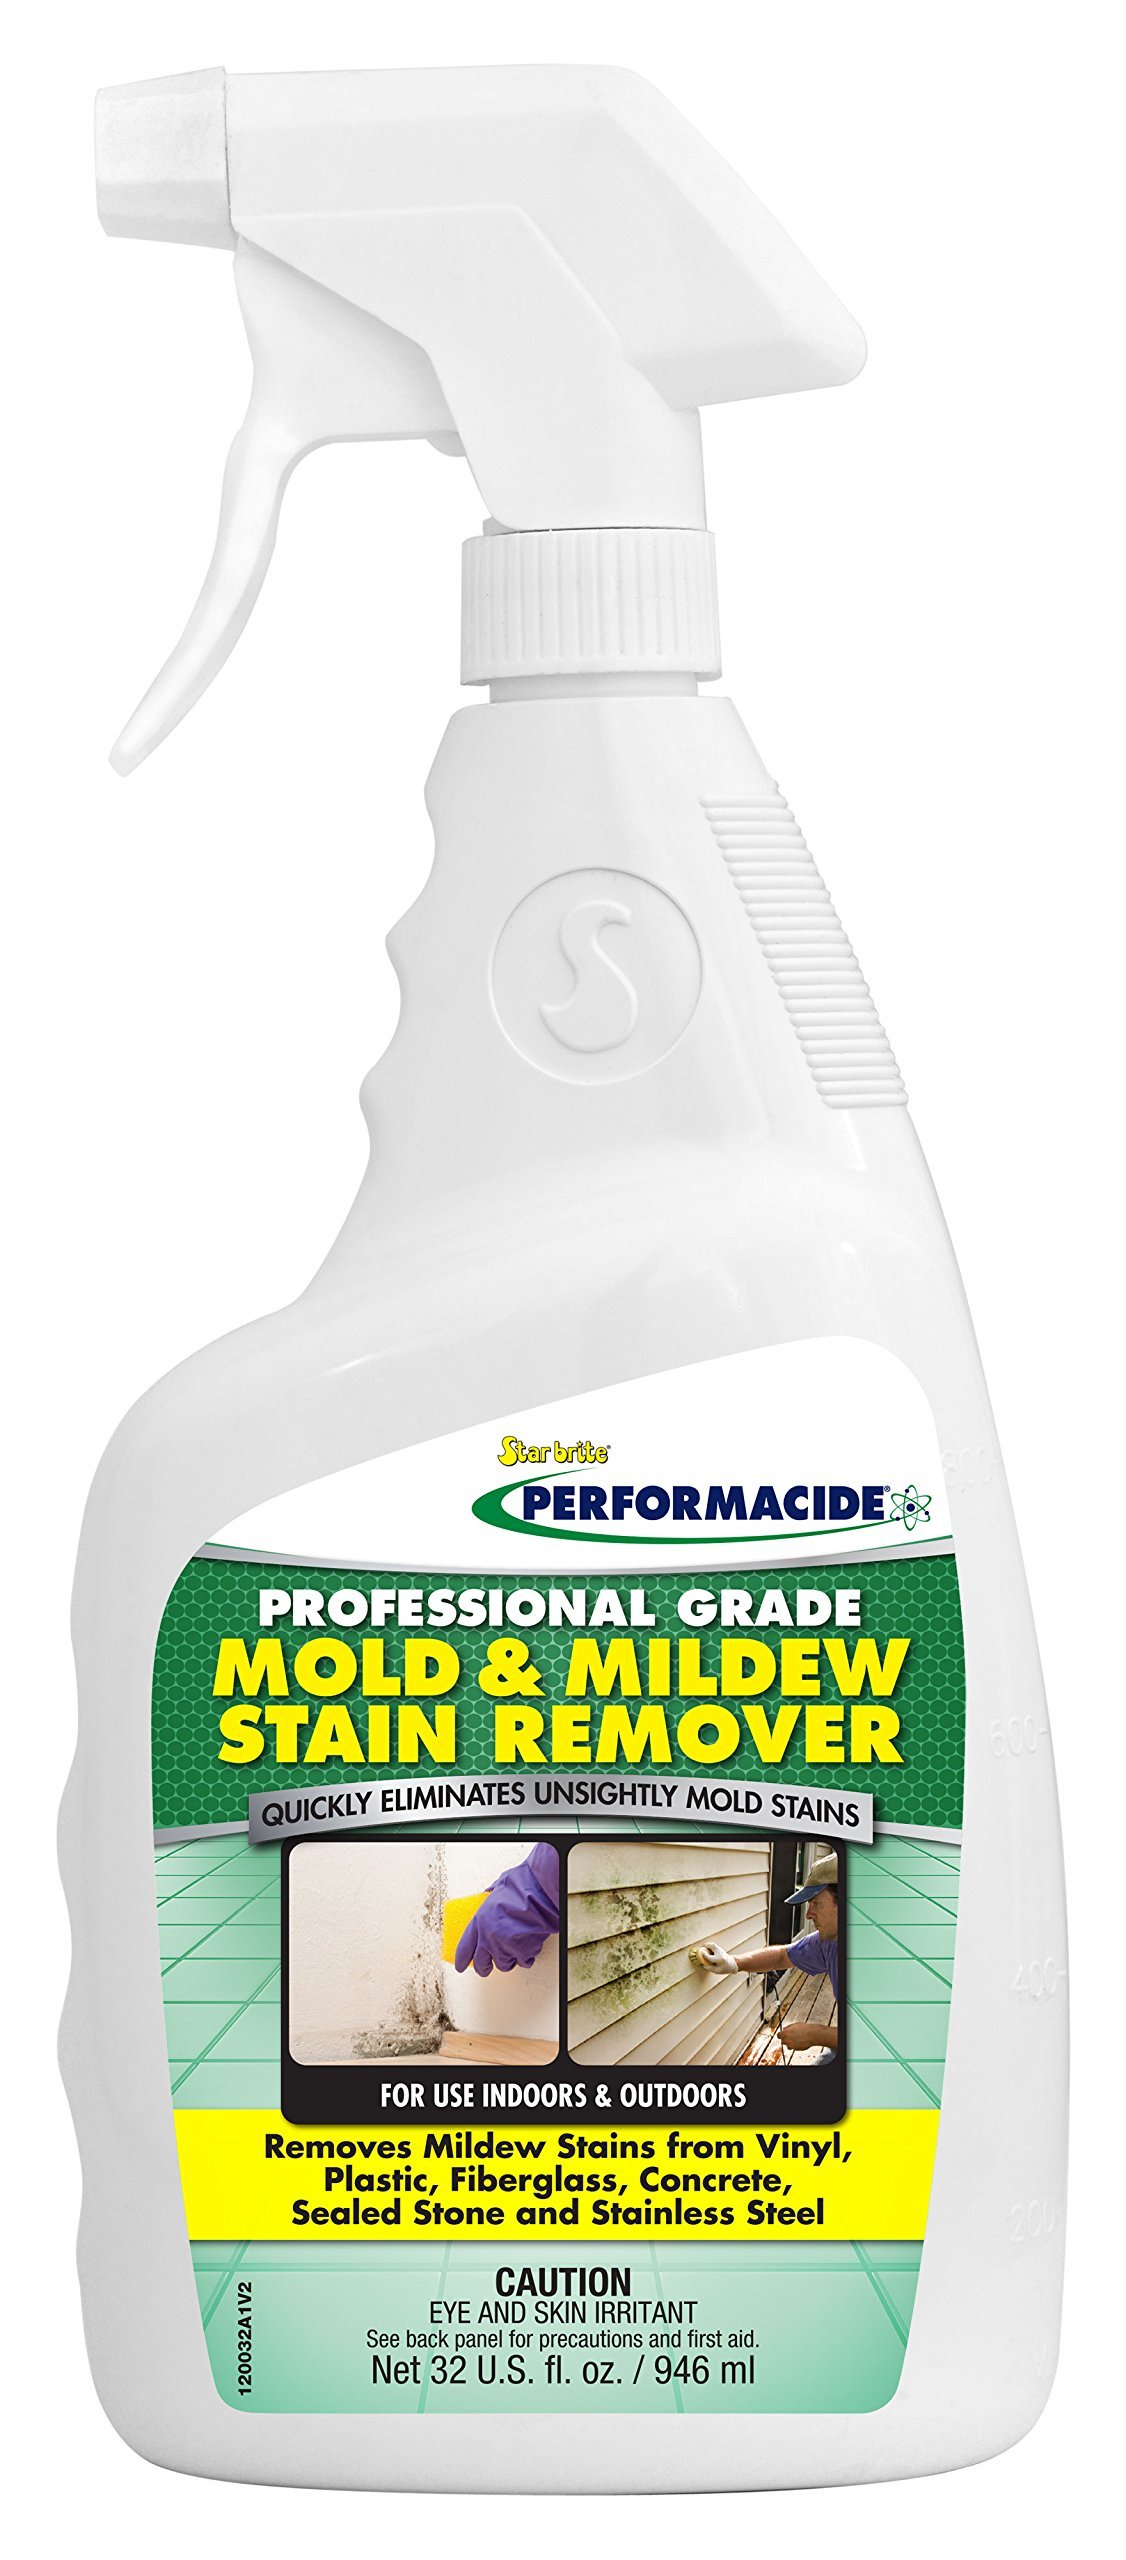 Performacide Mold & Mildew Stain Remover - Professional Grade, 32 oz Sprayer